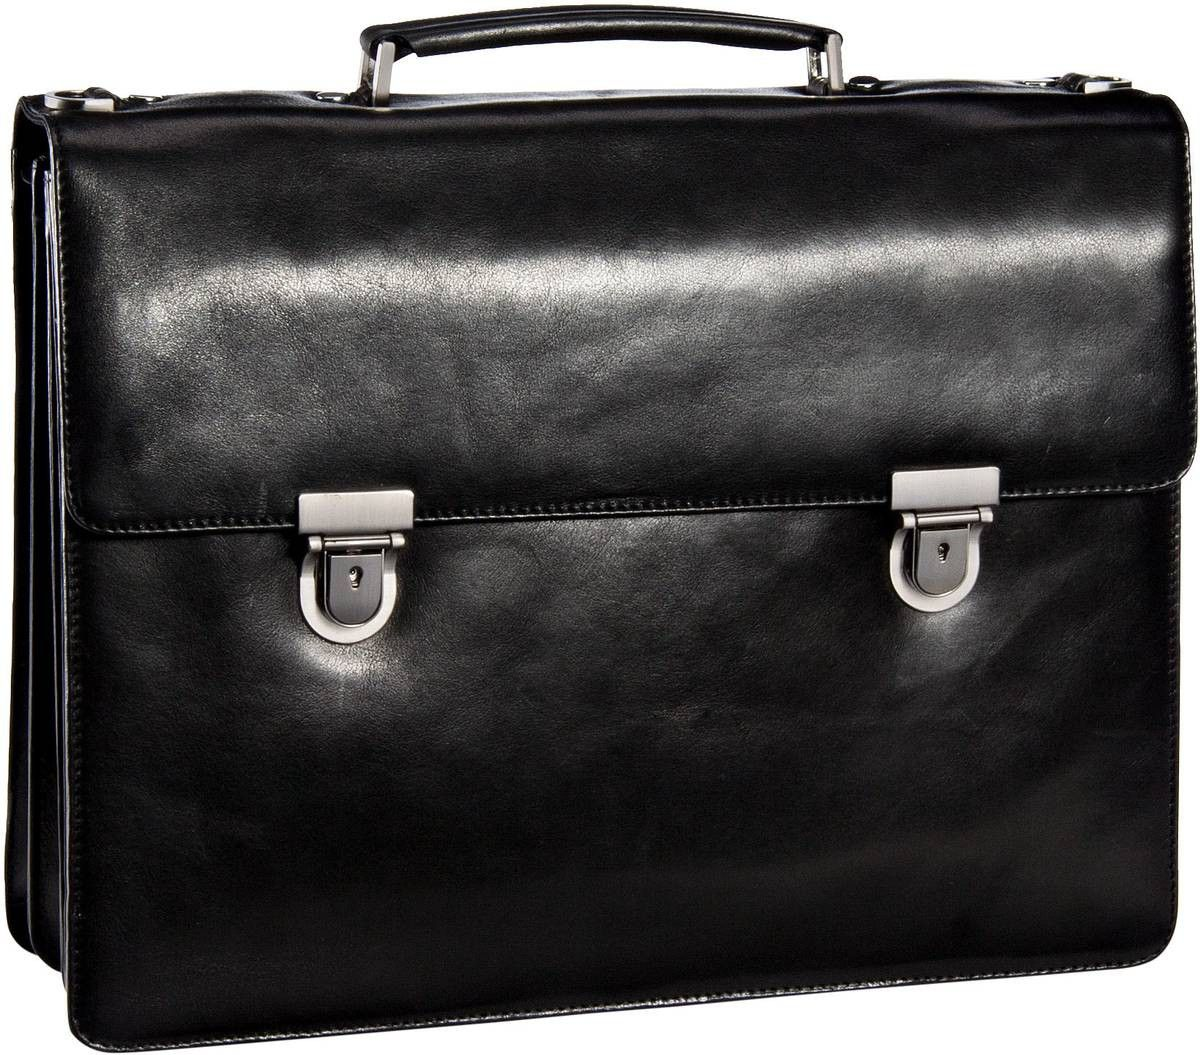 Leonhard Heyden Cambridge 5252 Aktenmappe 3 Fächer Schwarz - Notebooktasche   Tablet